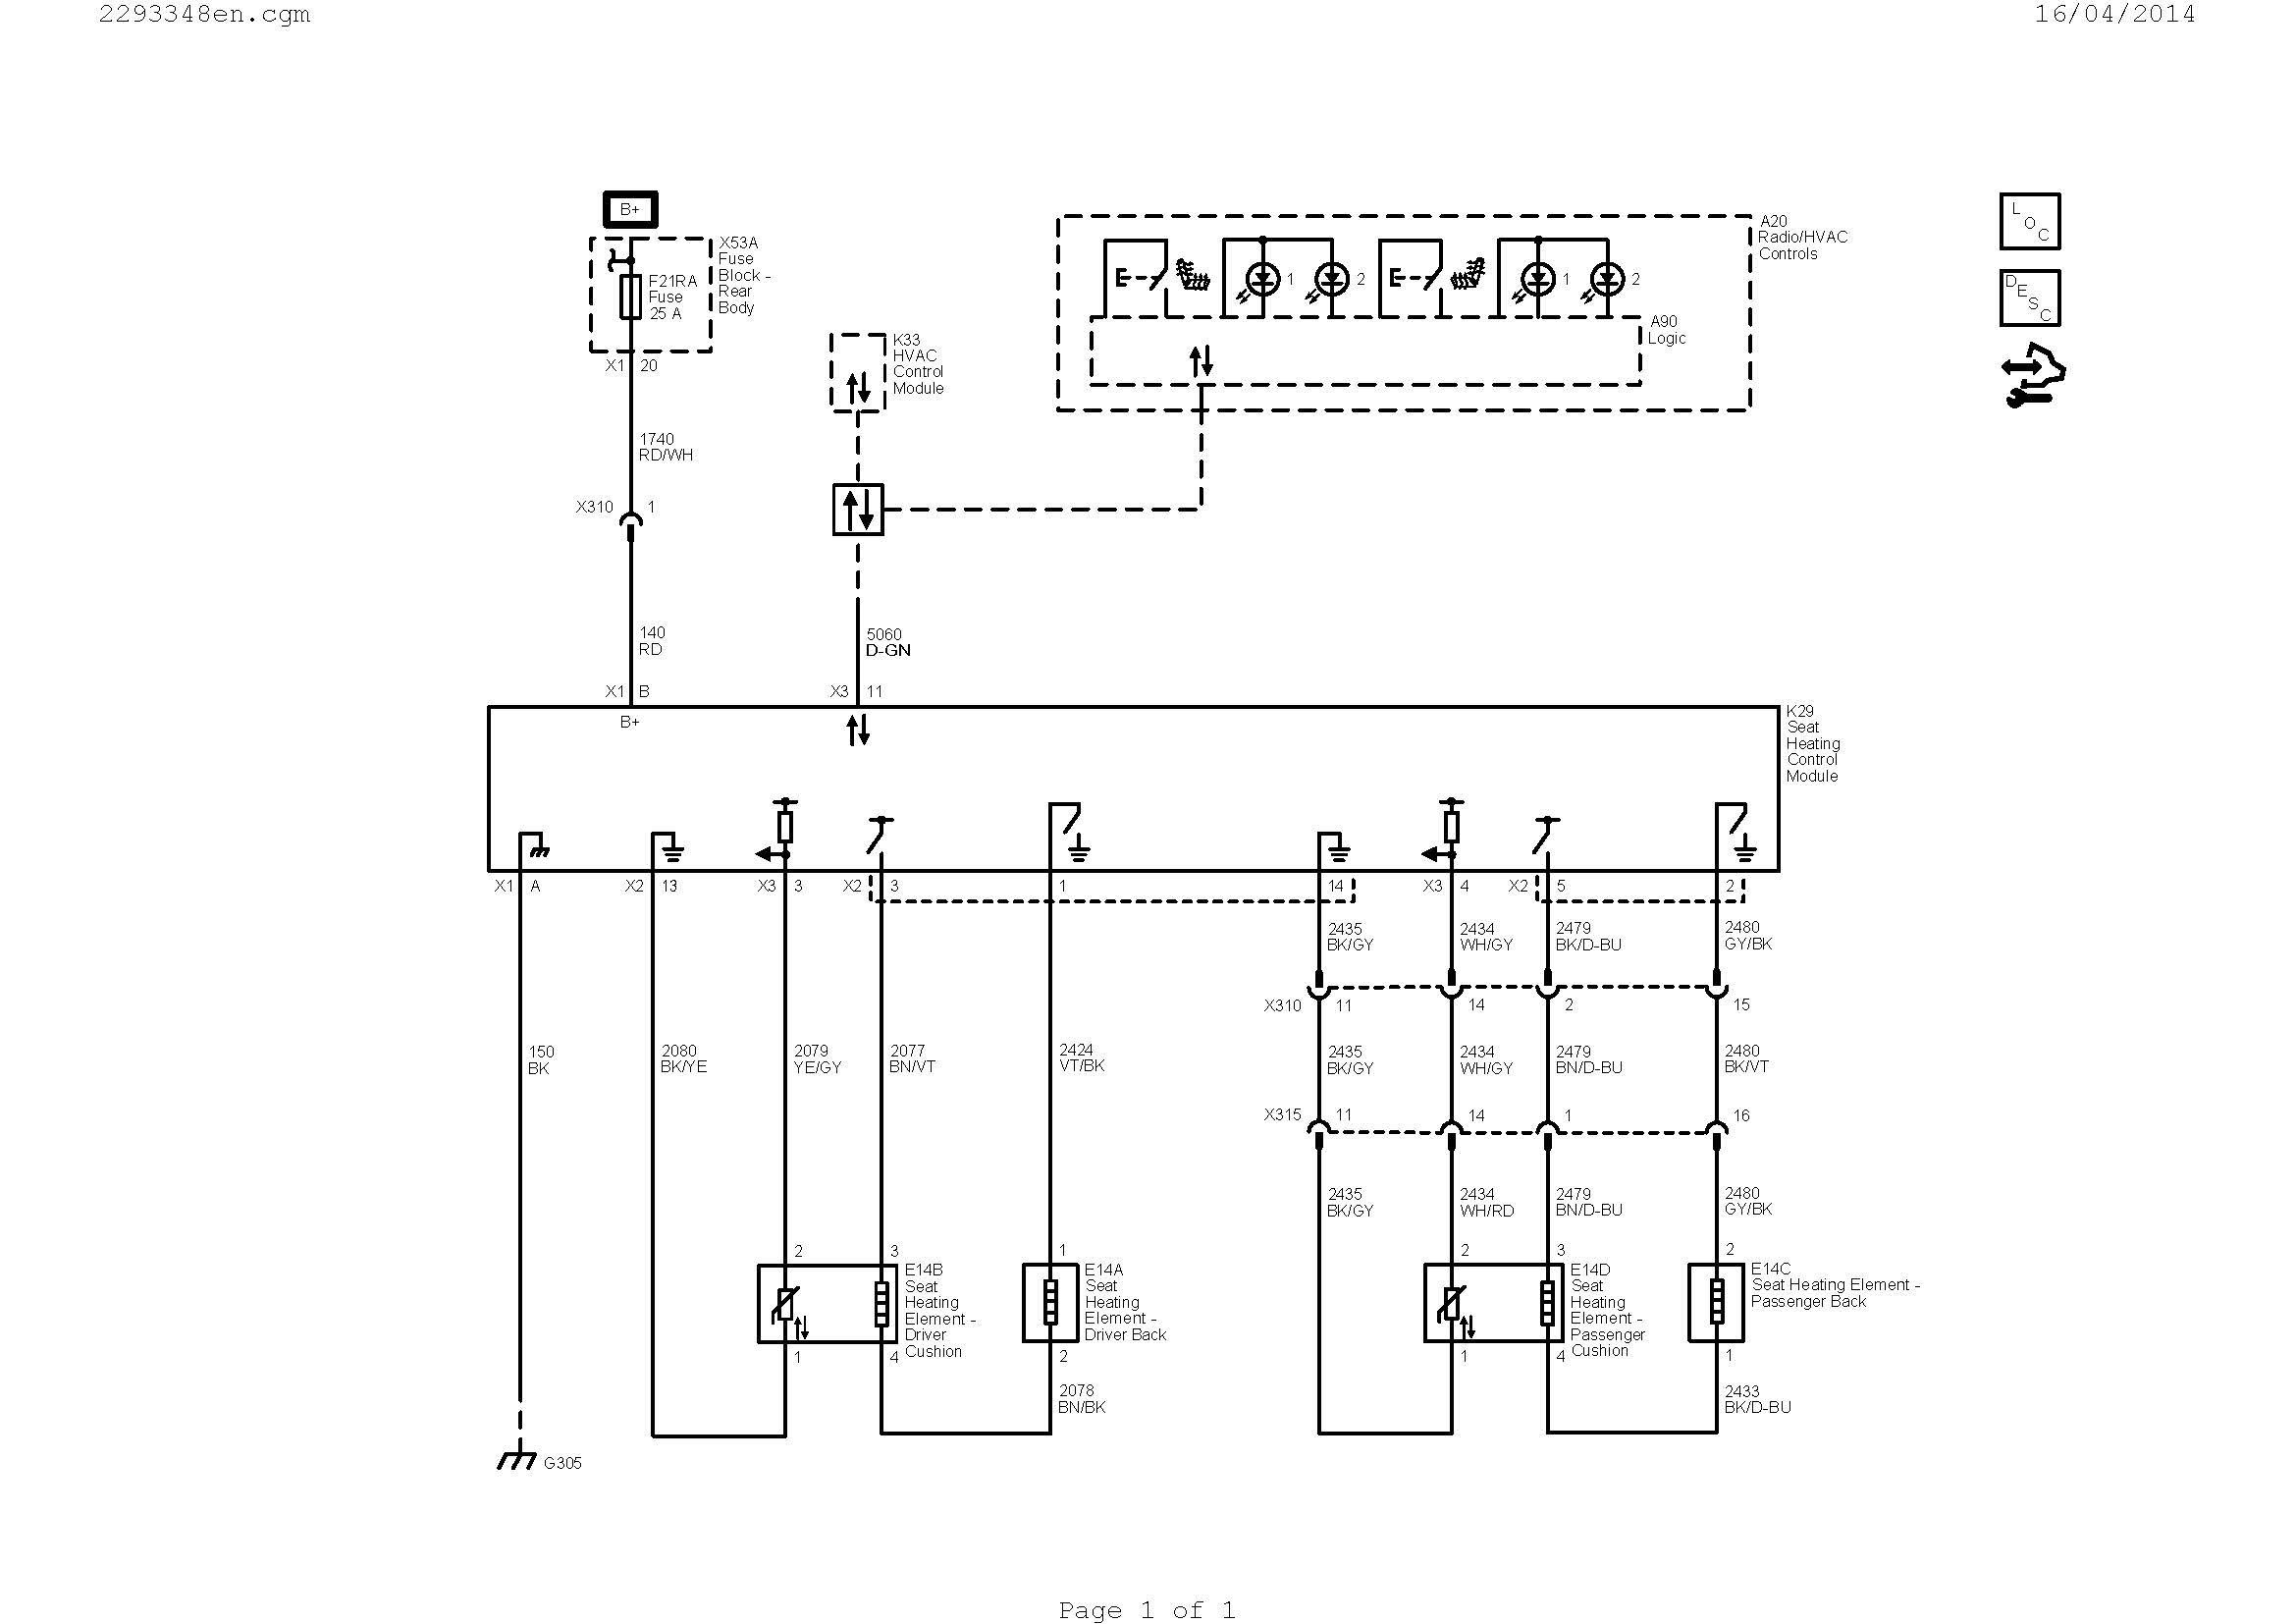 underfloor heating thermostat wiring diagram Download-Wiring A Ac Thermostat Diagram New Wiring Diagram Ac Valid Hvac Diagram Best Hvac Diagram 0d – Wire 4-s